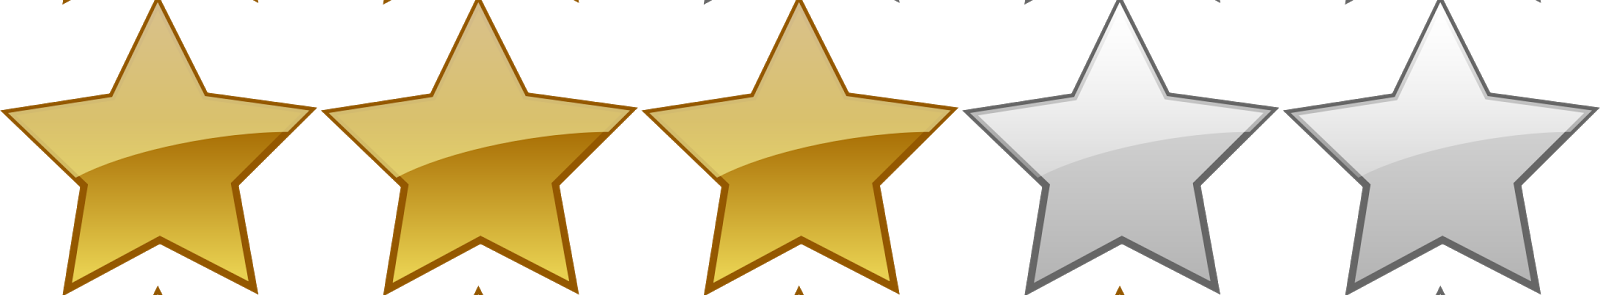 Clipart for girl being honest gold star badge clipart transparent download The Book Magnet: March 2018 clipart transparent download